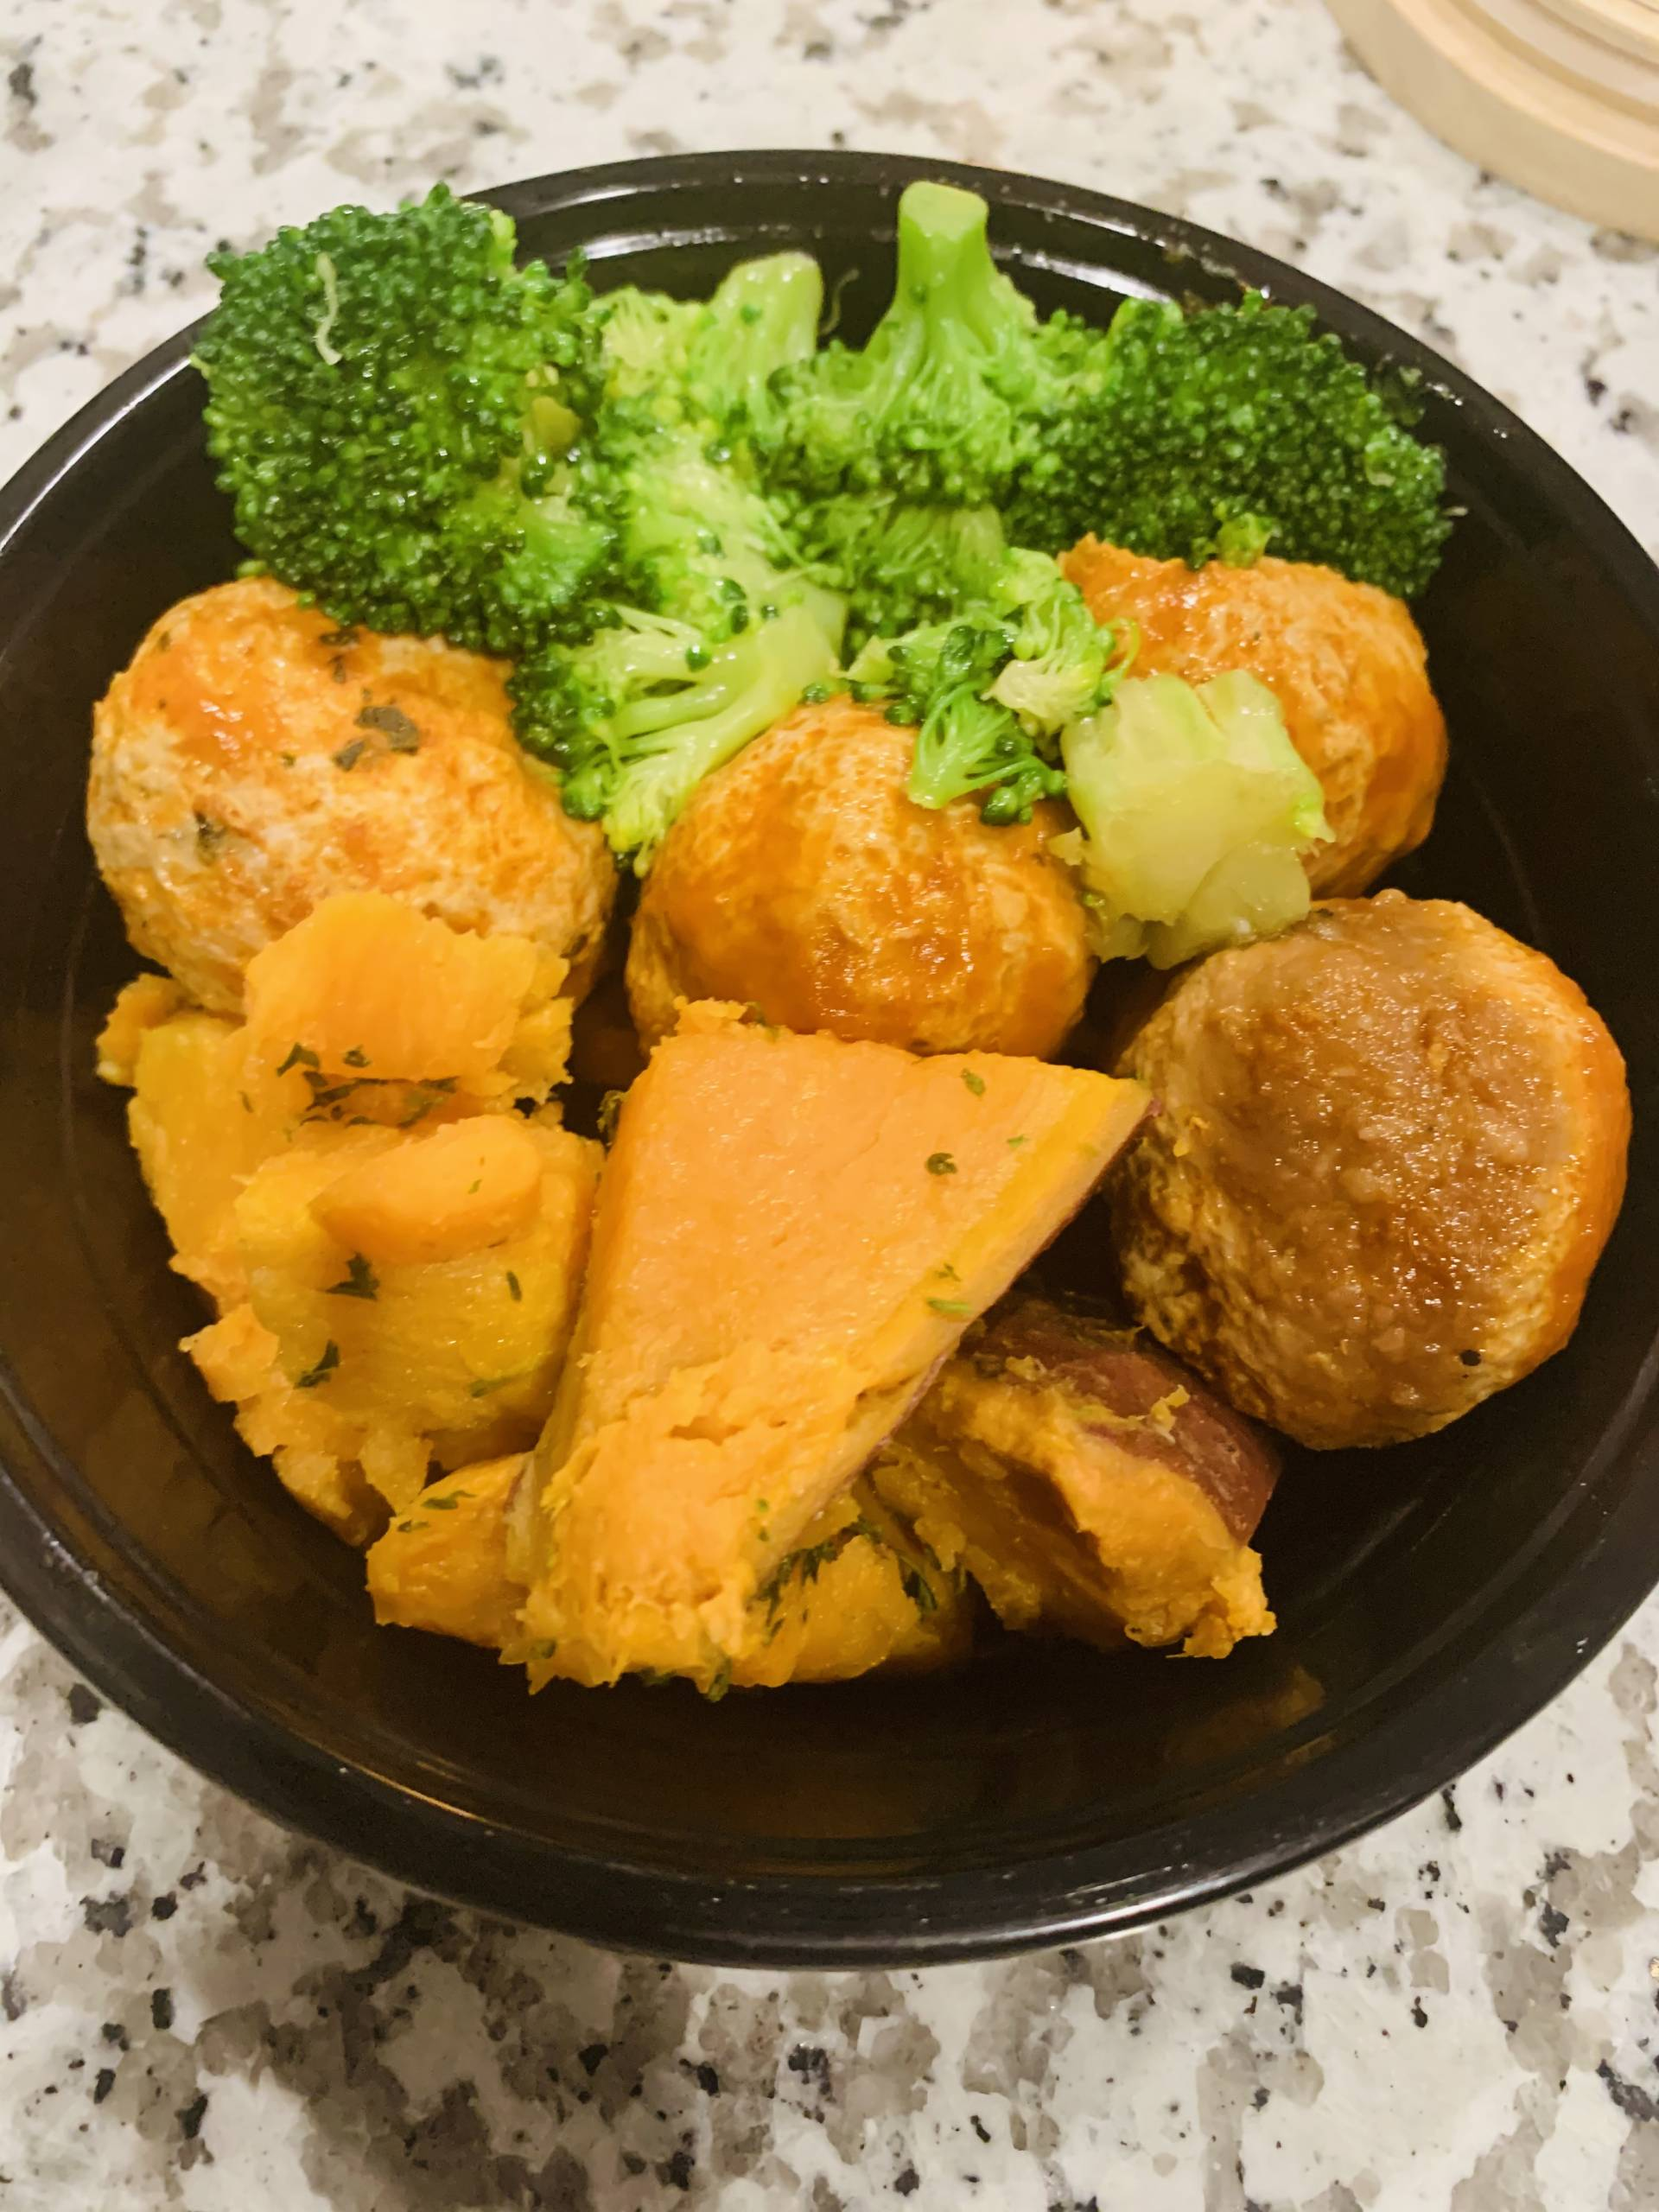 Turkey Meatballs, Sweet Potato and Broccoli